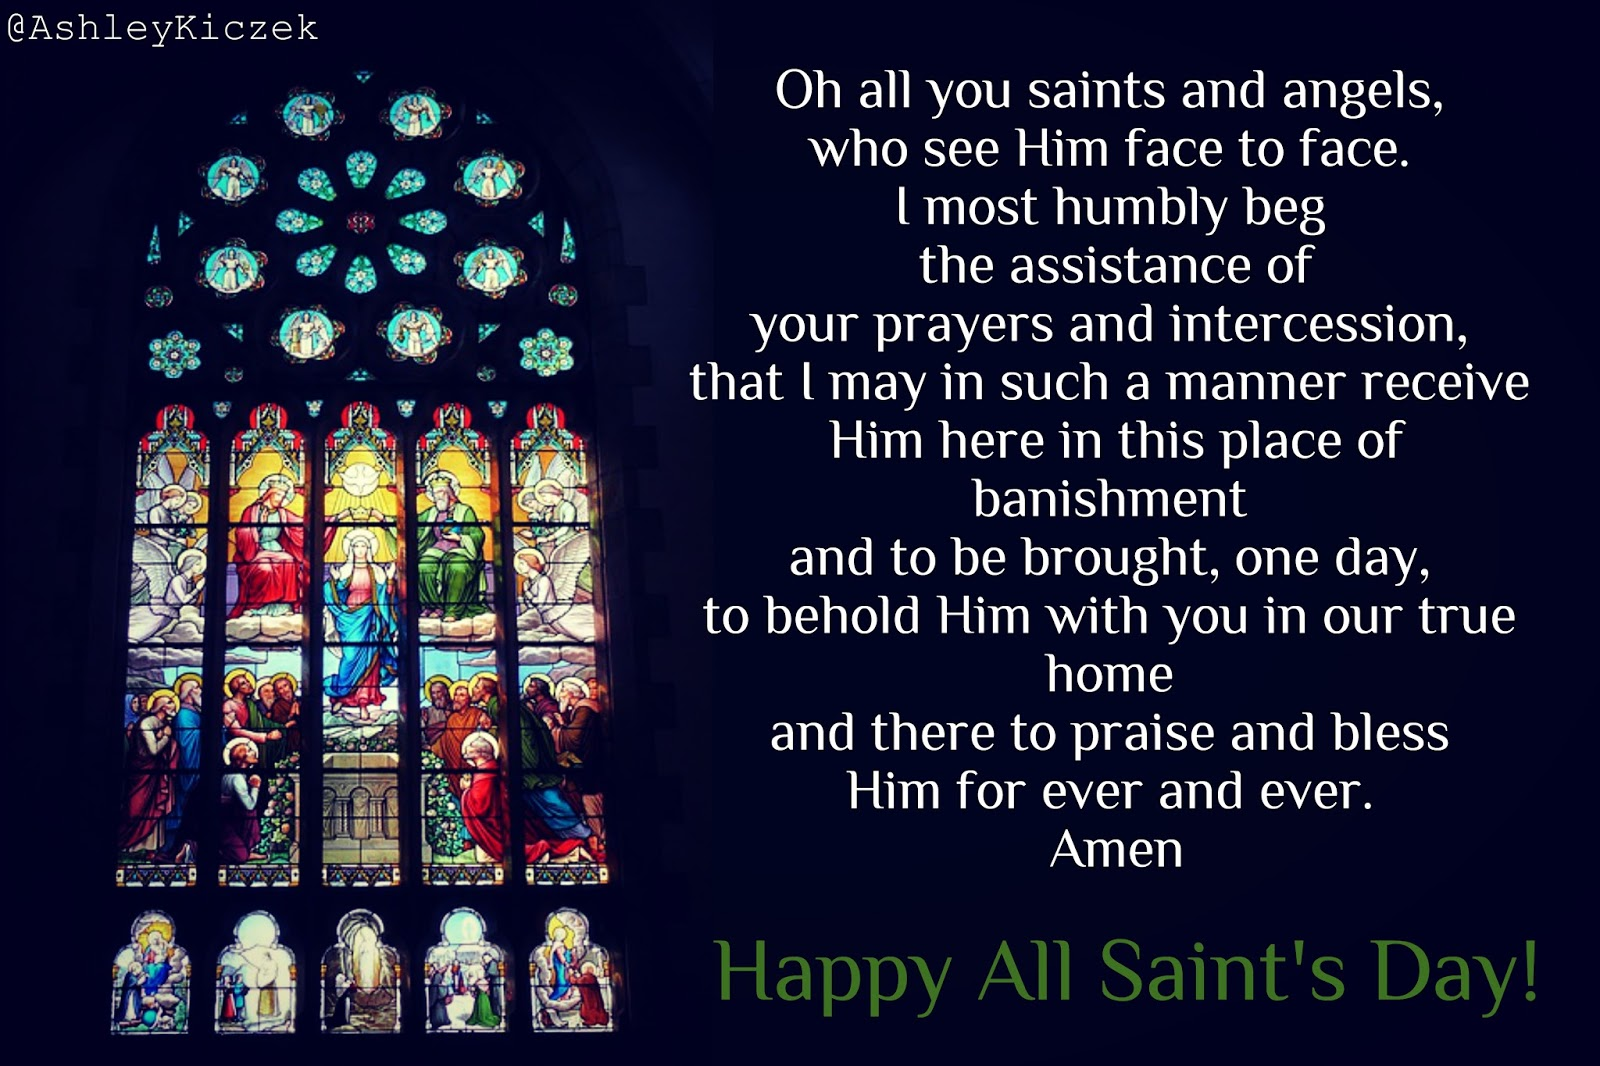 All Saints Day Prayer